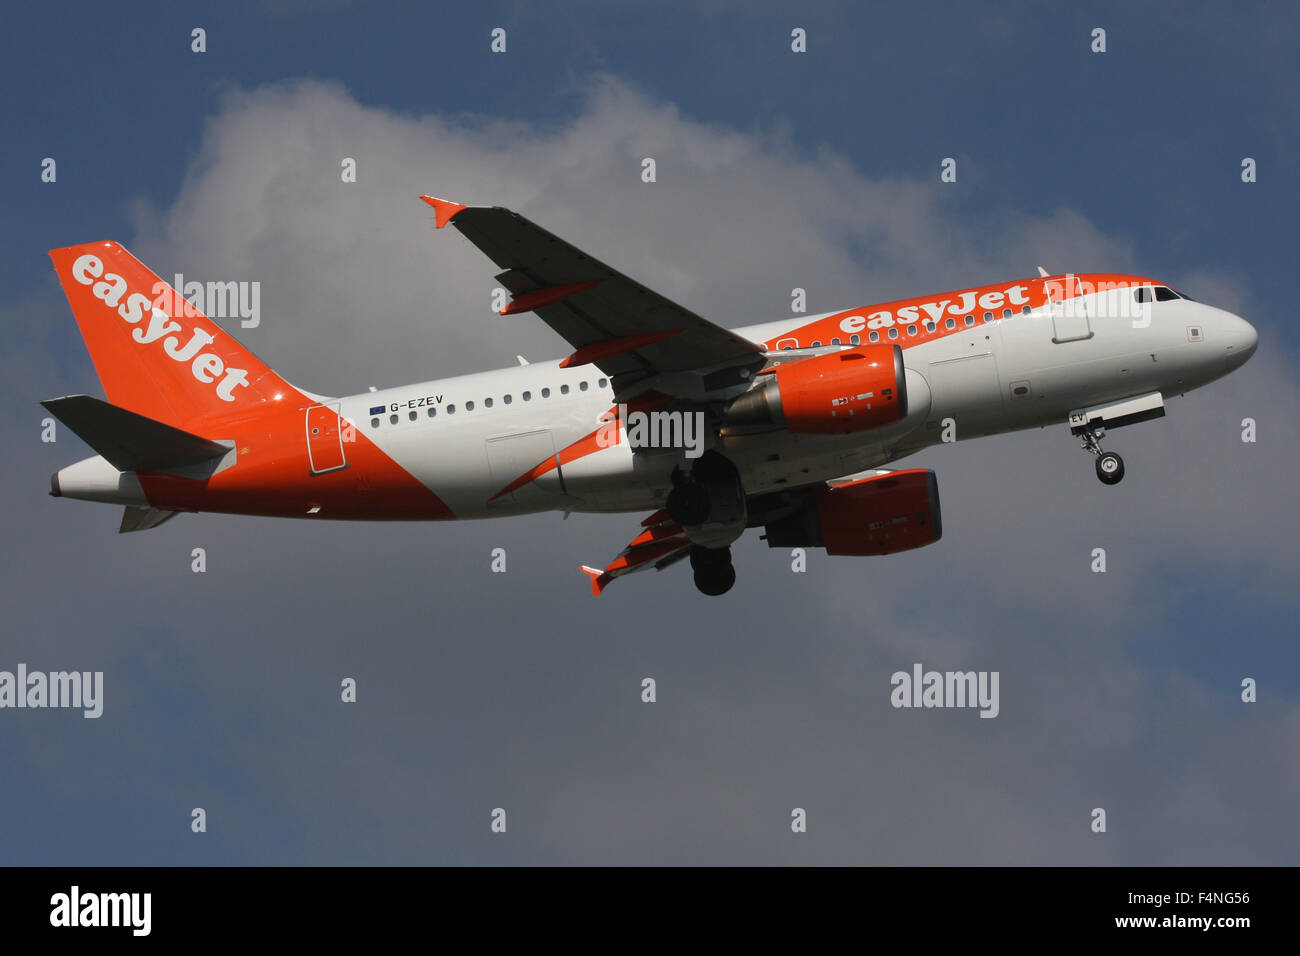 EASYJET AIRBUS A319 TAKE OFF IN LATEST NEW LIVERY 2015 - Stock Image